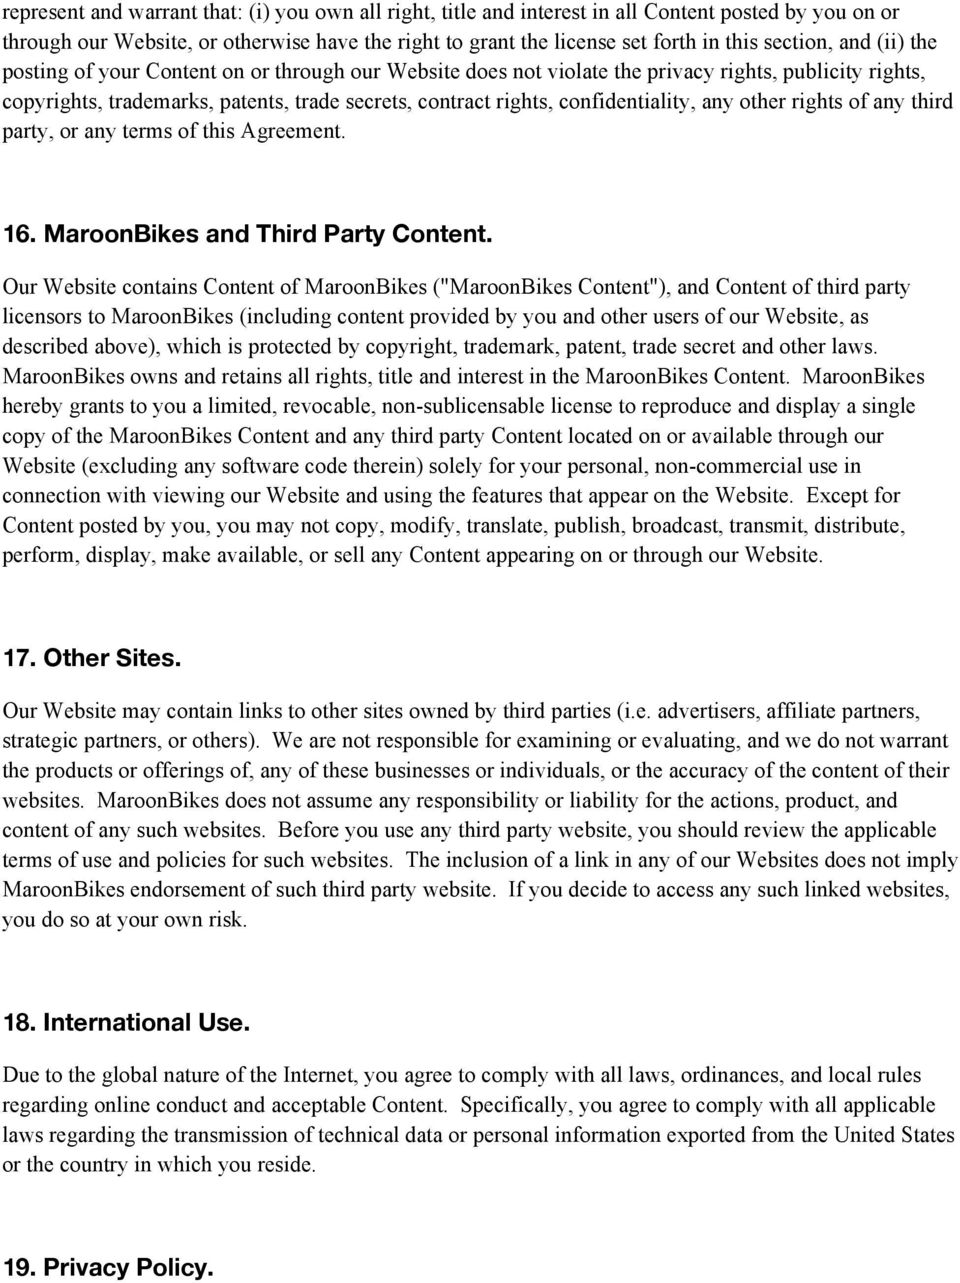 confidentiality, any other rights of any third party, or any terms of this Agreement. 16. MaroonBikes and Third Party Content.